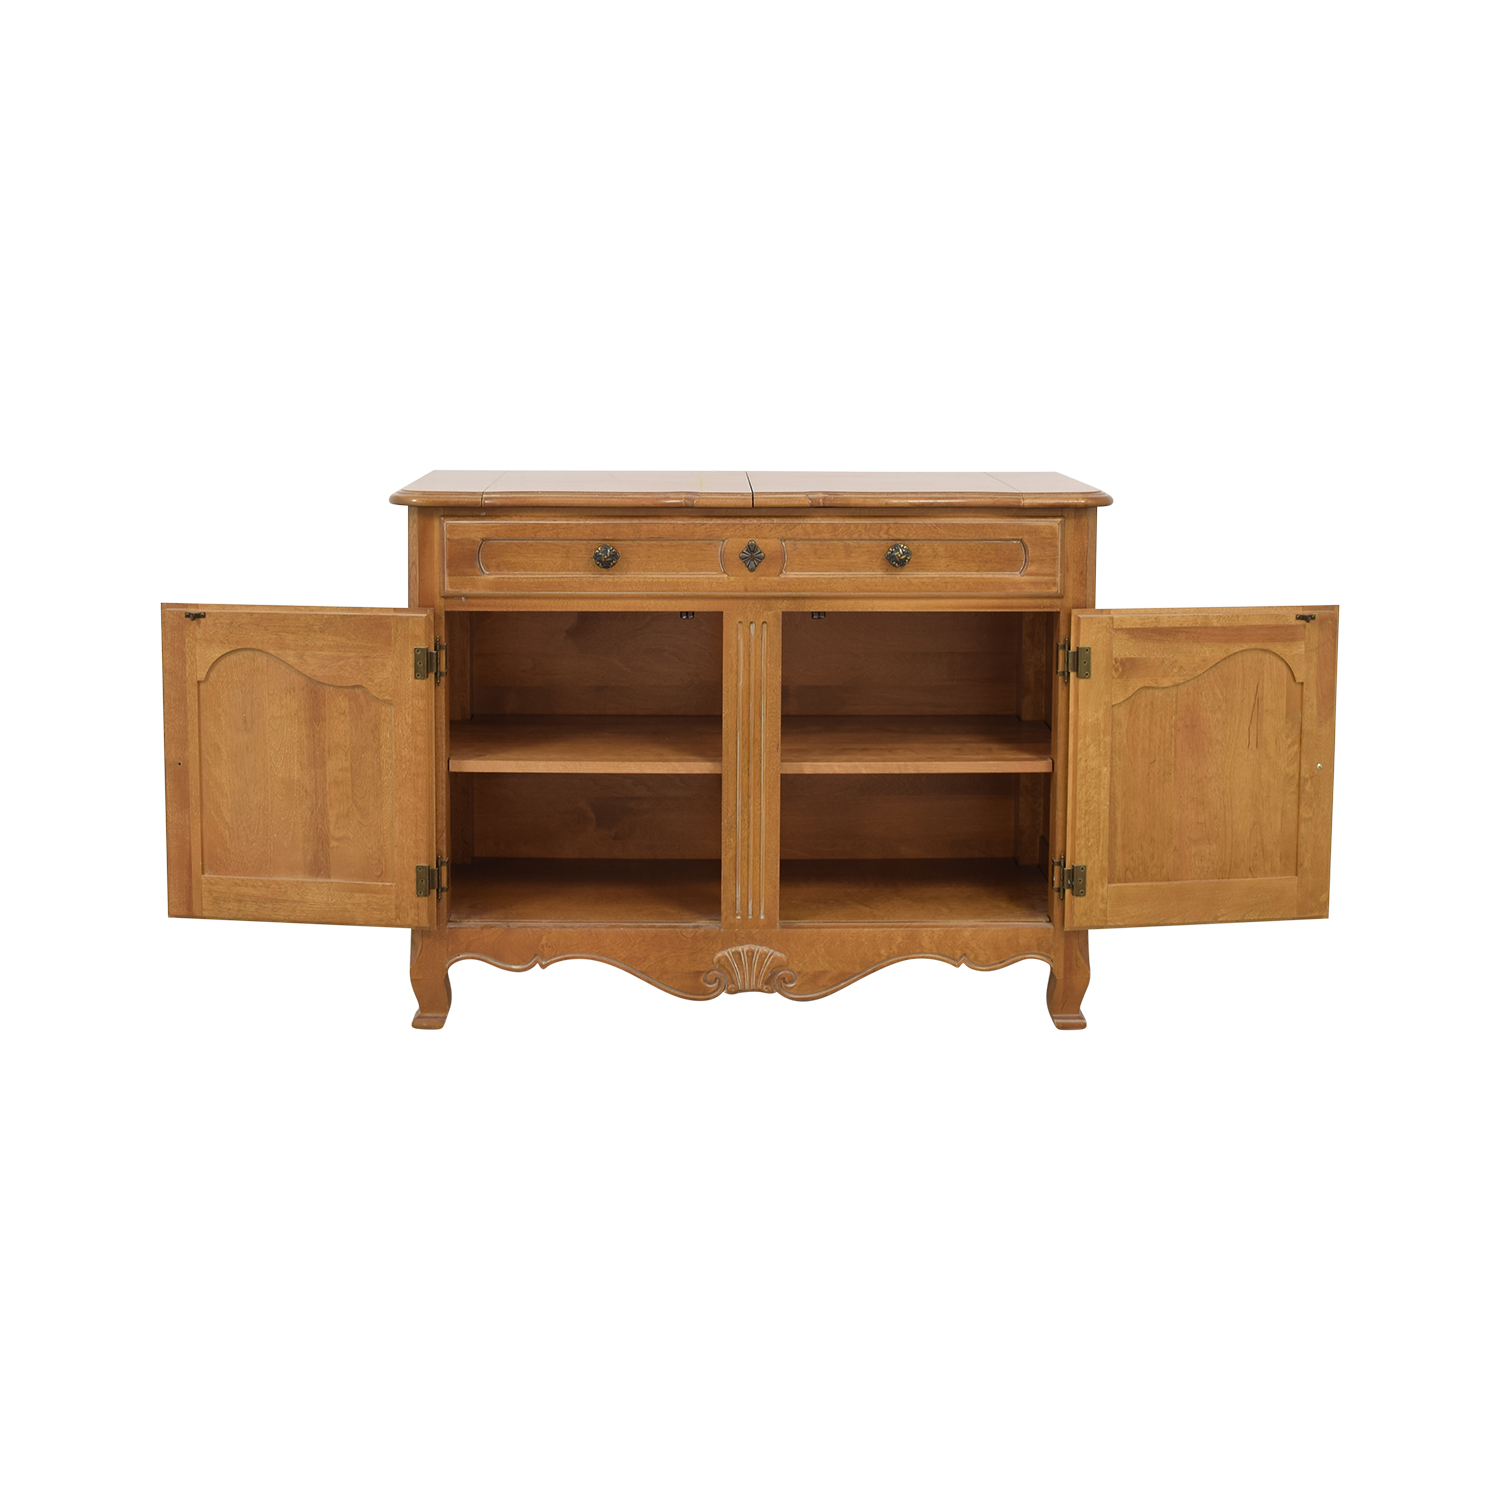 Ethan Allen Country French Server Ethan Allen